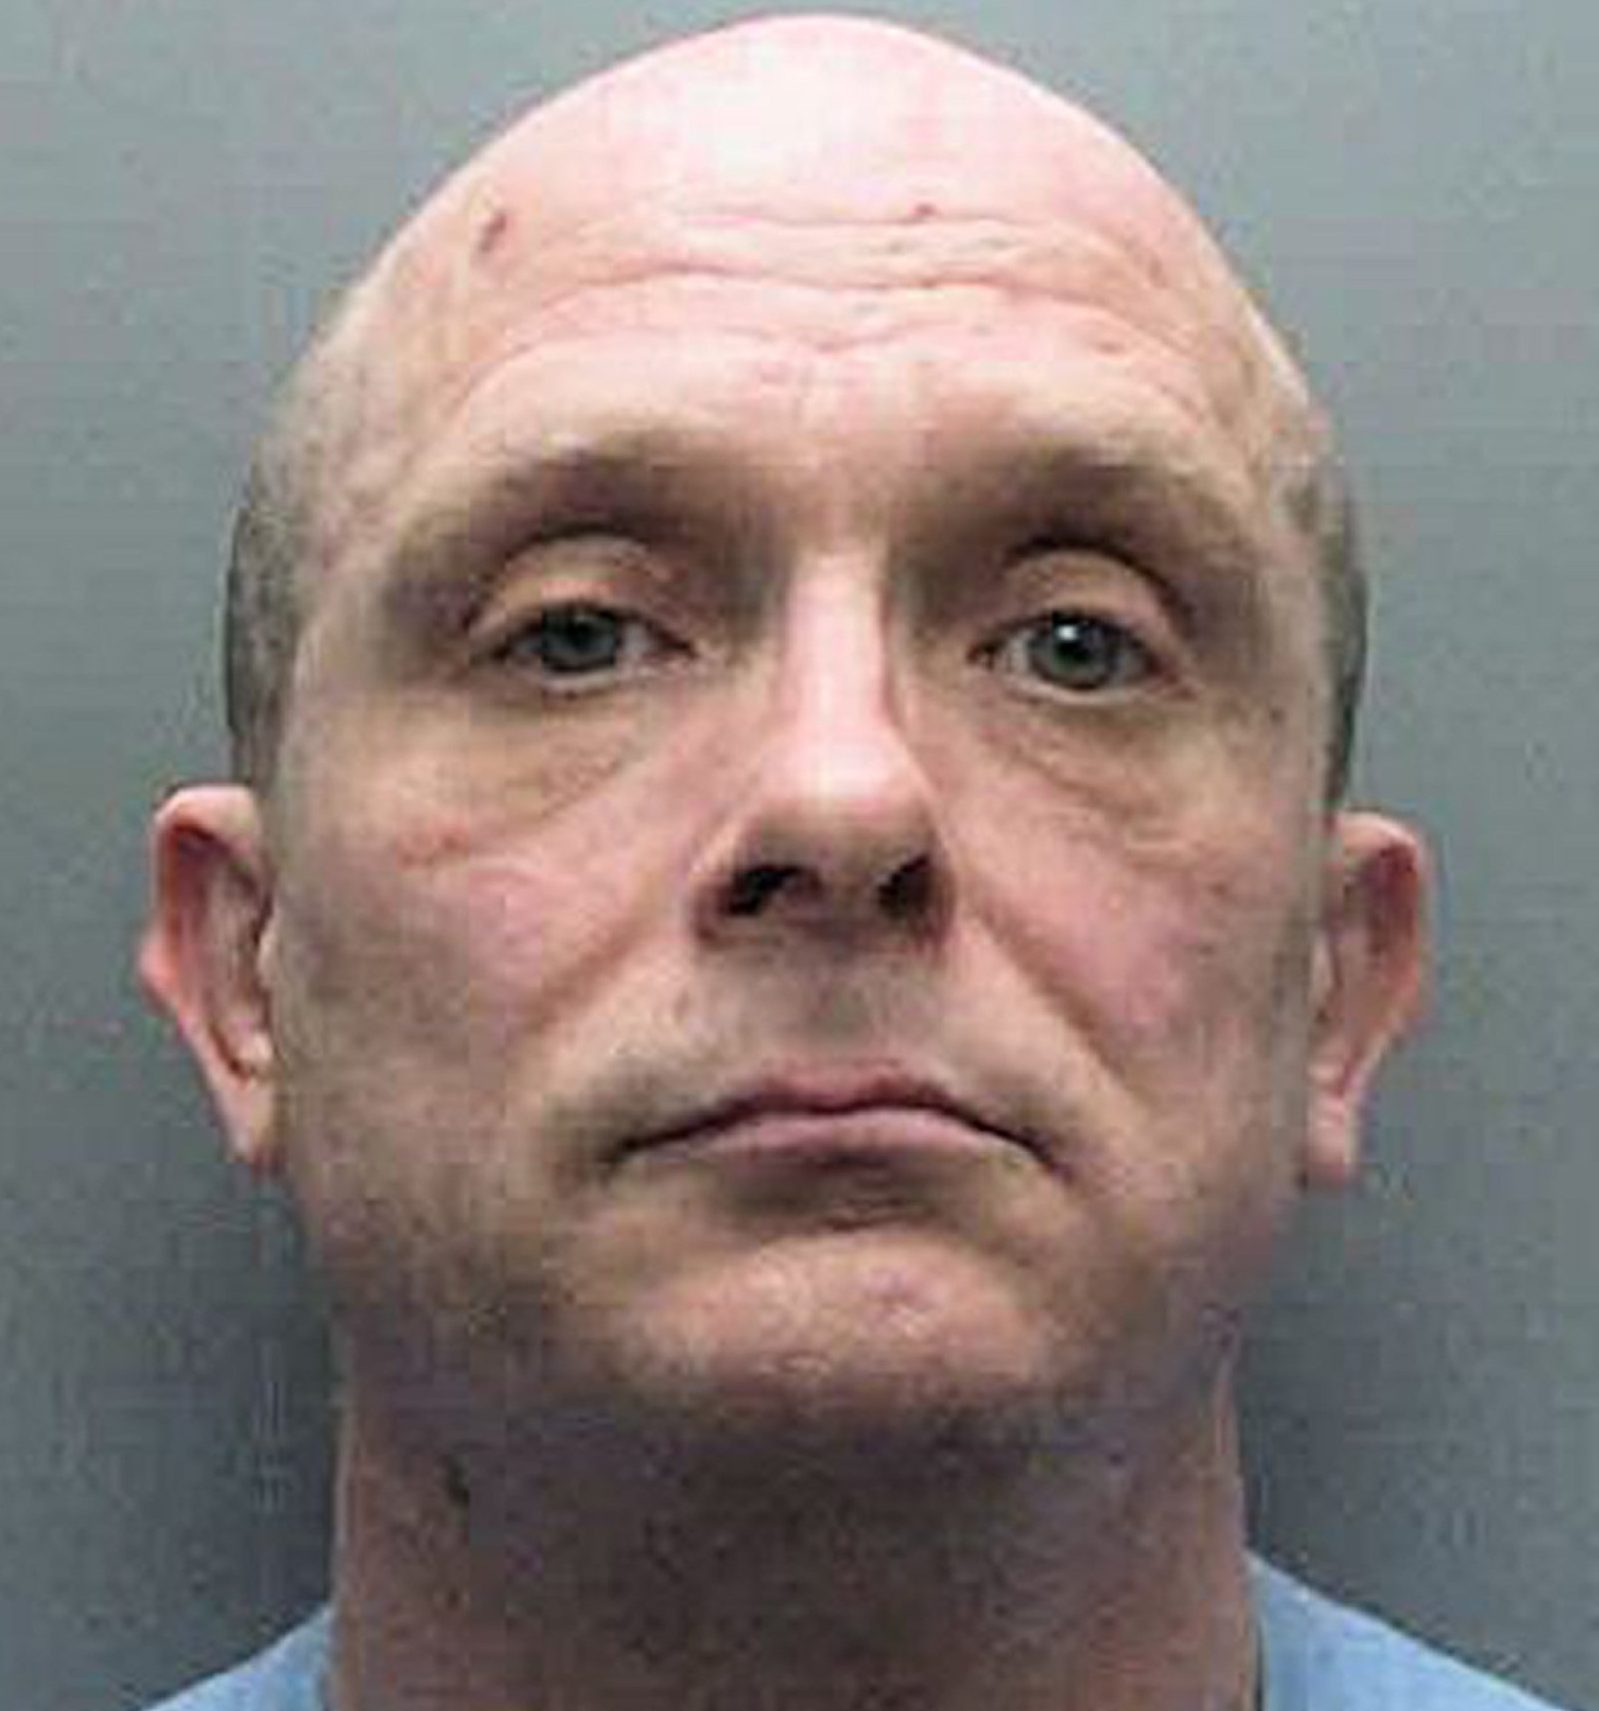 Undated Sussex Police handout photo of Russell Bishop who is on trial at the Old Bailey where he is accused of the murders of nine-year-olds Nicola Fellows and Karen Hadaway more than thirty years ago. PRESS ASSOCIATION Photo. Issue date: Tuesday October 16, 2018. The girls were found dead in Wild Park, on the South Downs near Brighton, East Sussex, a day after they went missing on October 9 1986. See PA story COURTS Bishop. Photo credit should read: Sussex Police/PA Wire NOTE TO EDITORS: This handout photo may only be used in for editorial reporting purposes for the contemporaneous illustration of events, things or the people in the image or facts mentioned in the caption. Reuse of the picture may require further permission from the copyright holder.